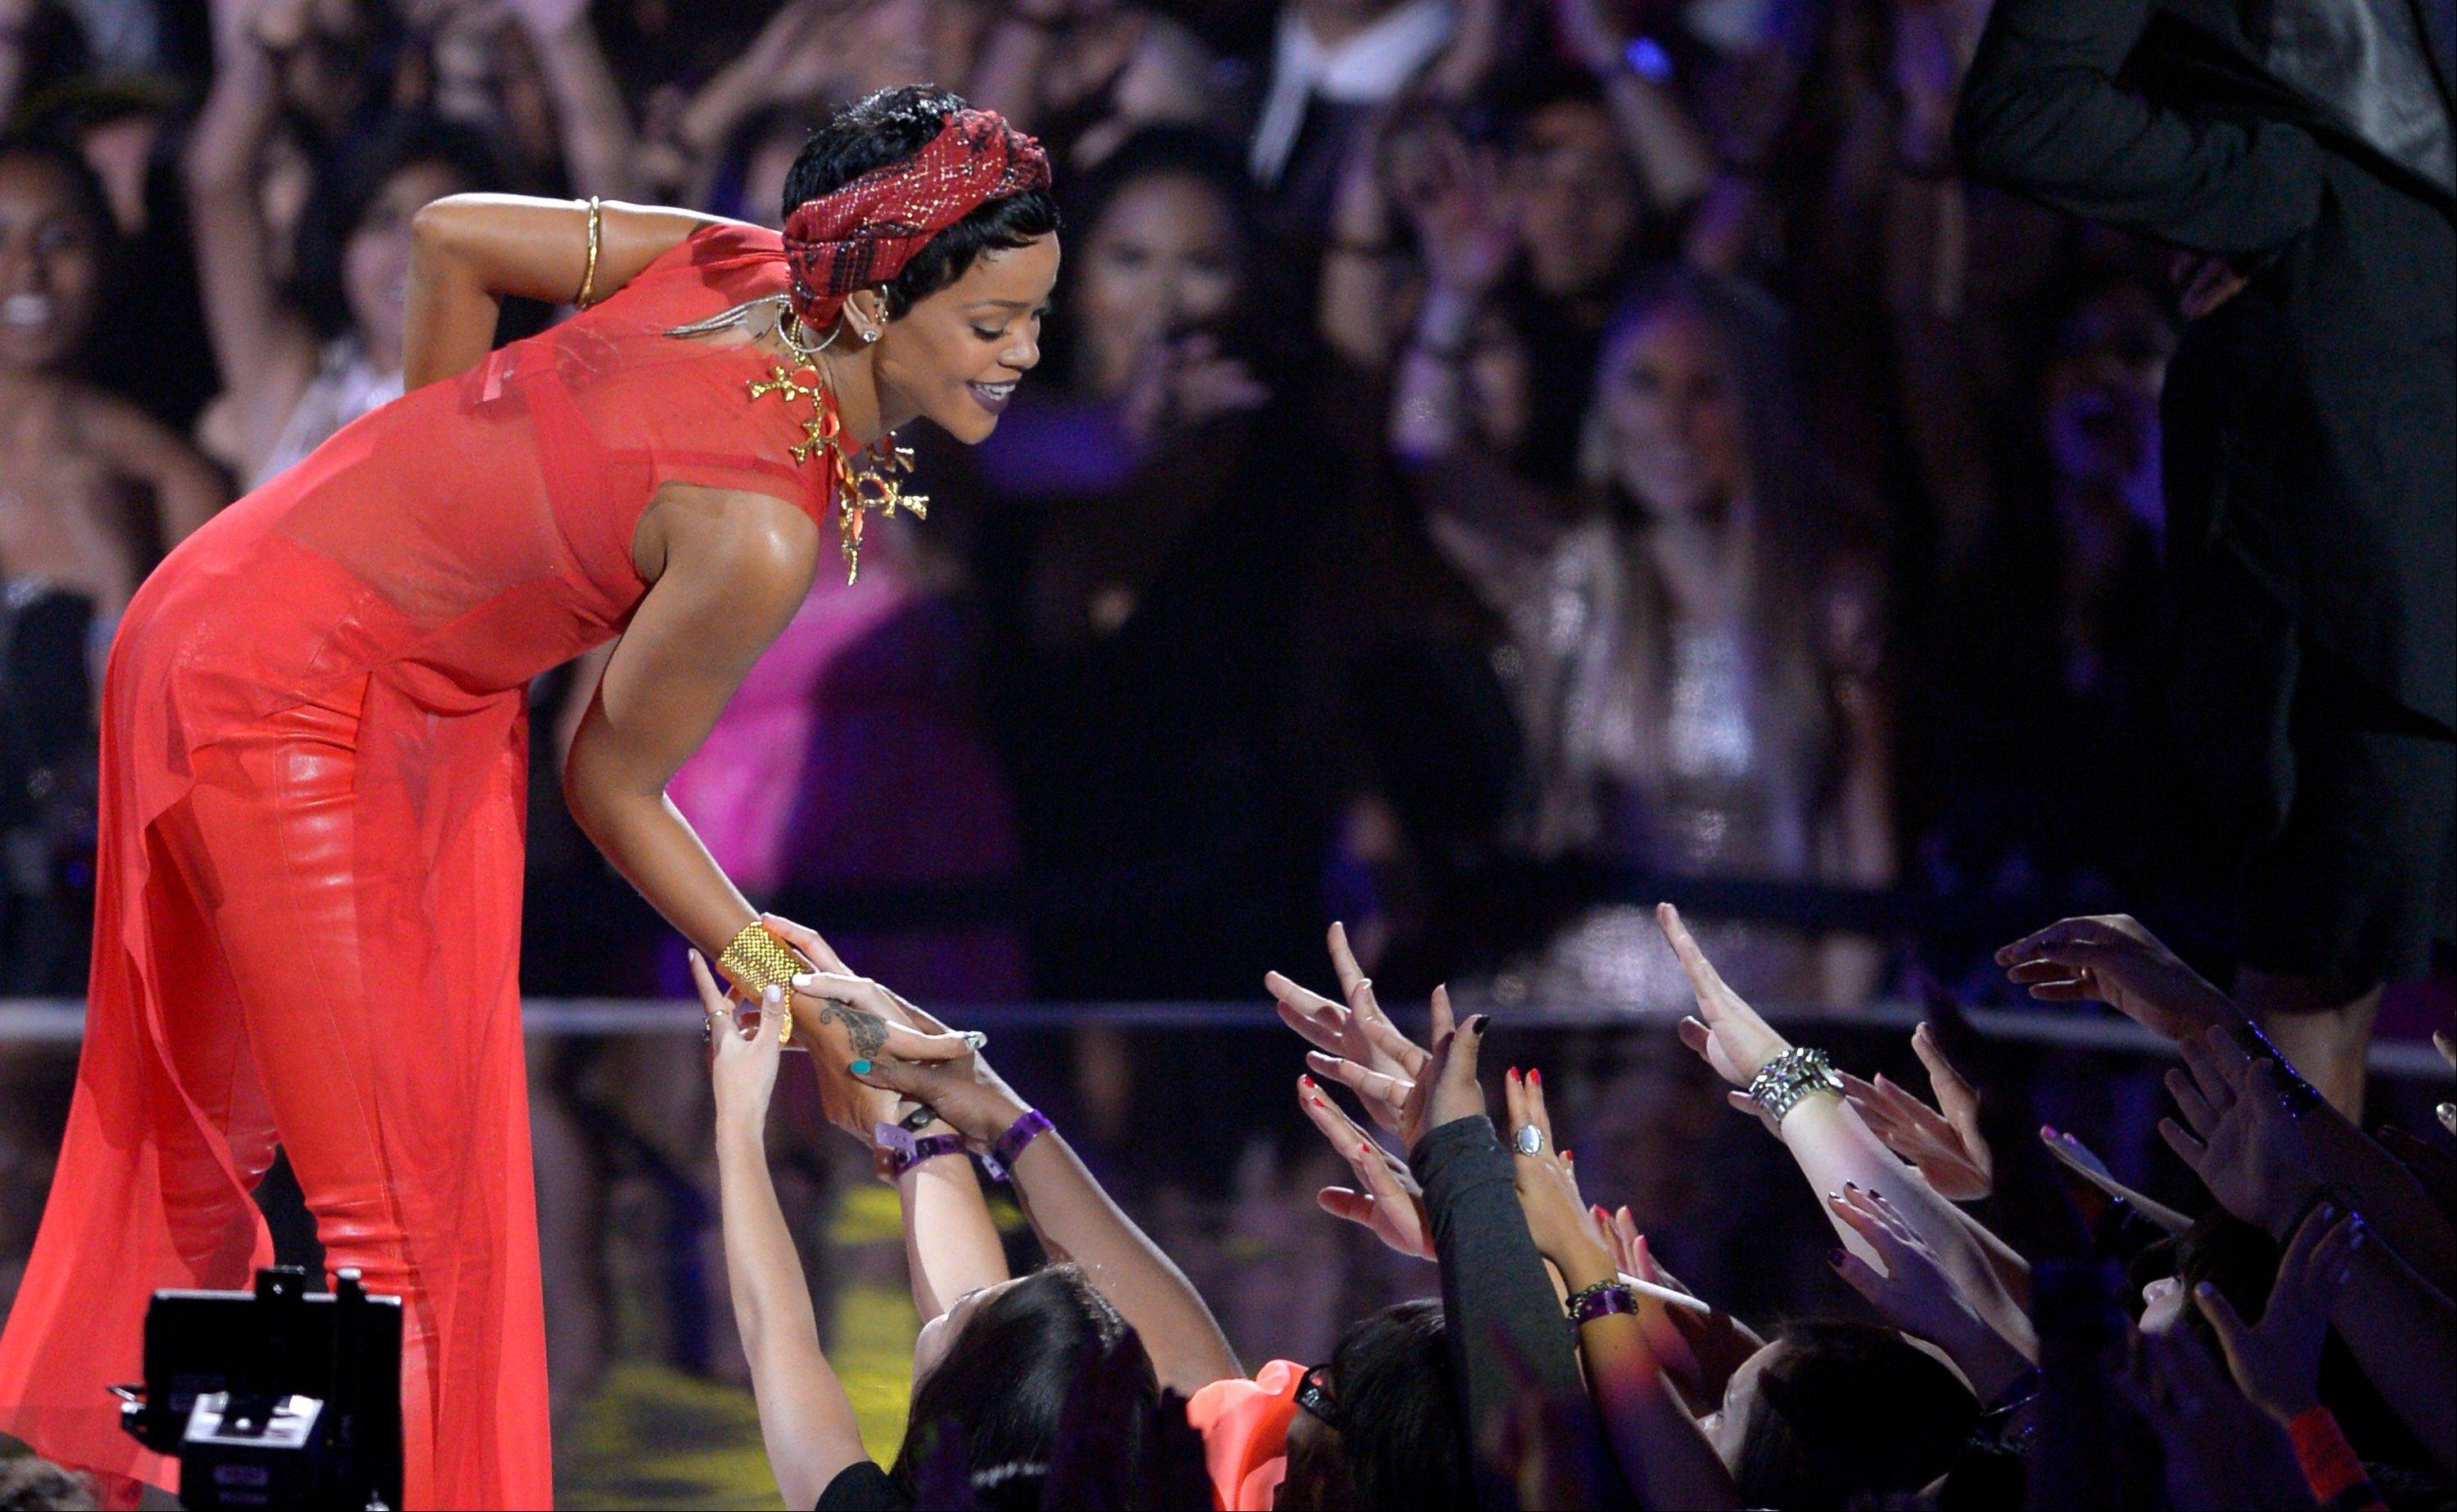 Rihanna performs at the MTV Video Music Awards on Thursday, Sept. 6, 2012, in Los Angeles.